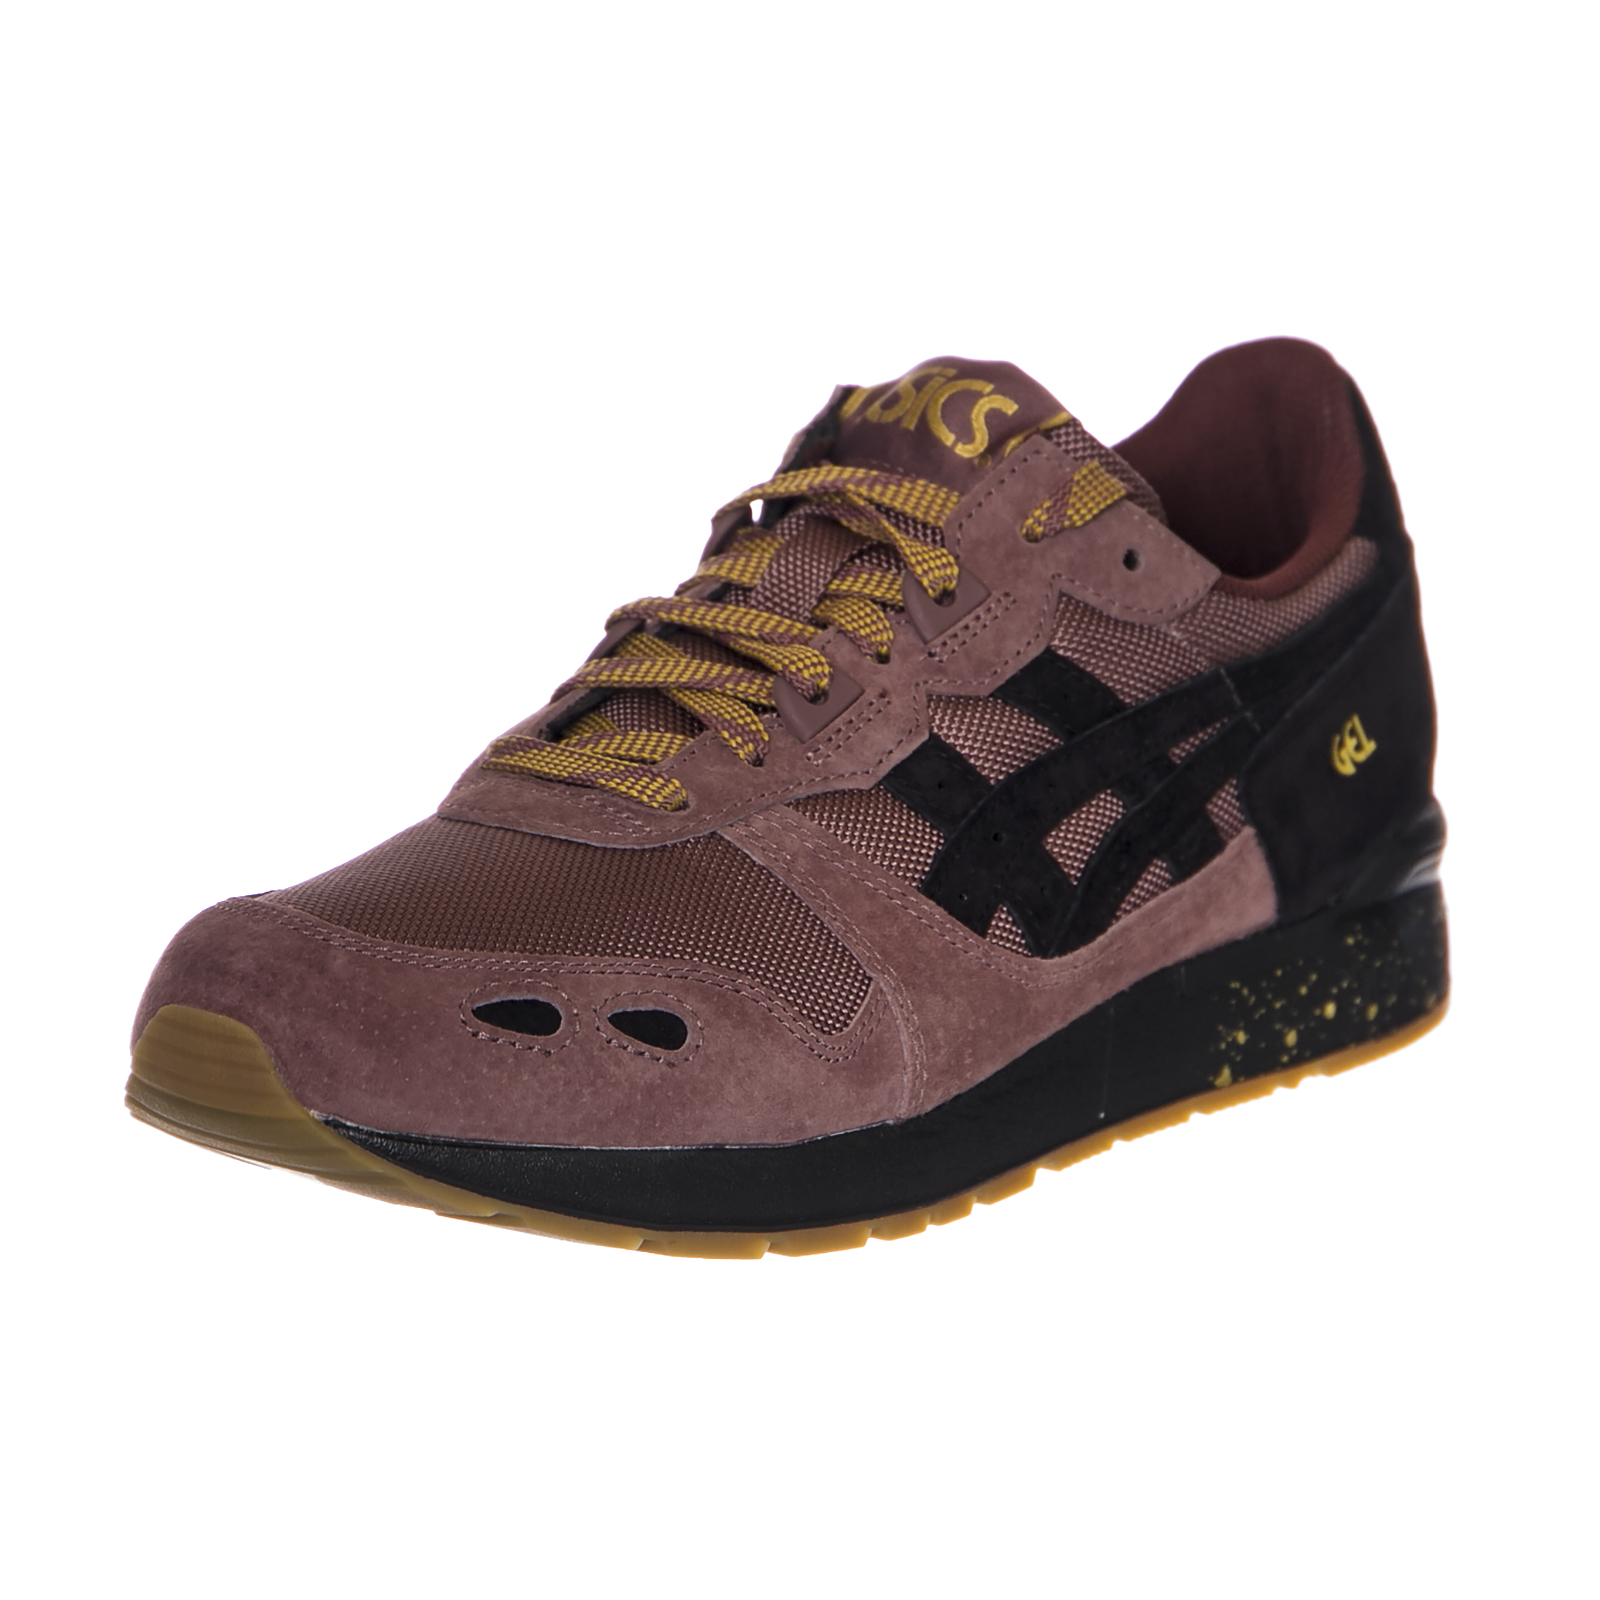 Asics Rosa Sneakers Gel-Lyte Rose Taupe/Black Rosa Asics 9823a8